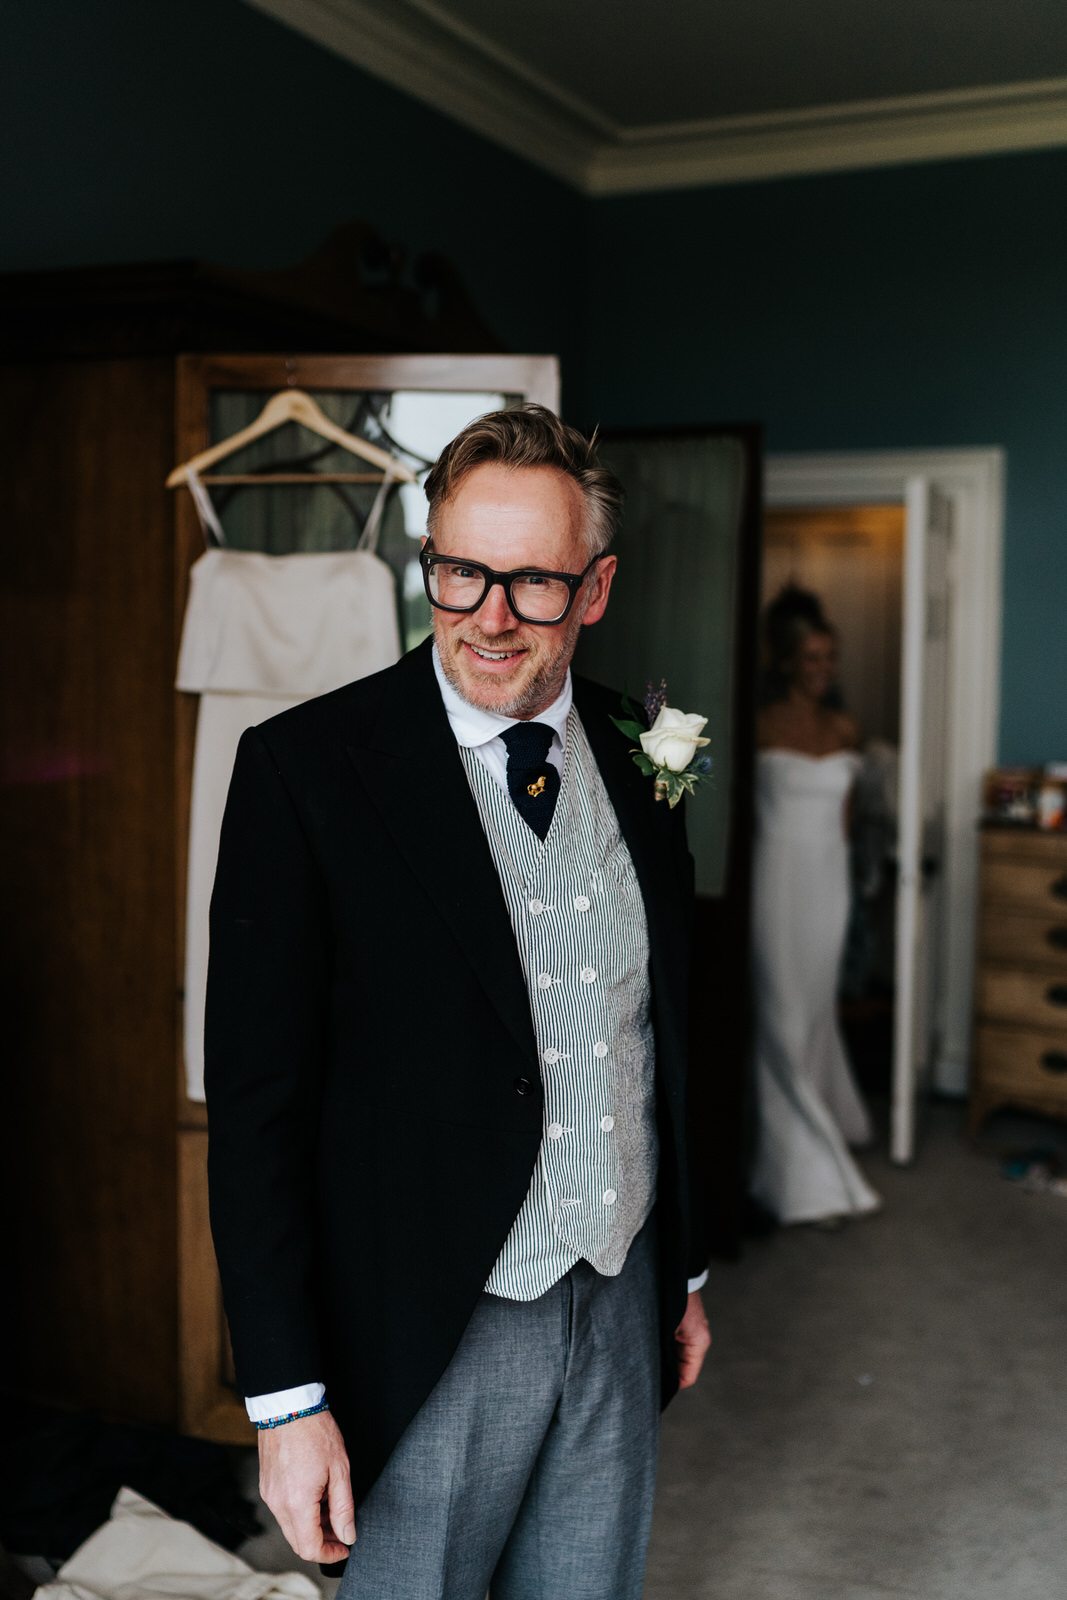 Father of the bride looks excitedly at the camera while the bride, fully dressed in her gown, enters at the back